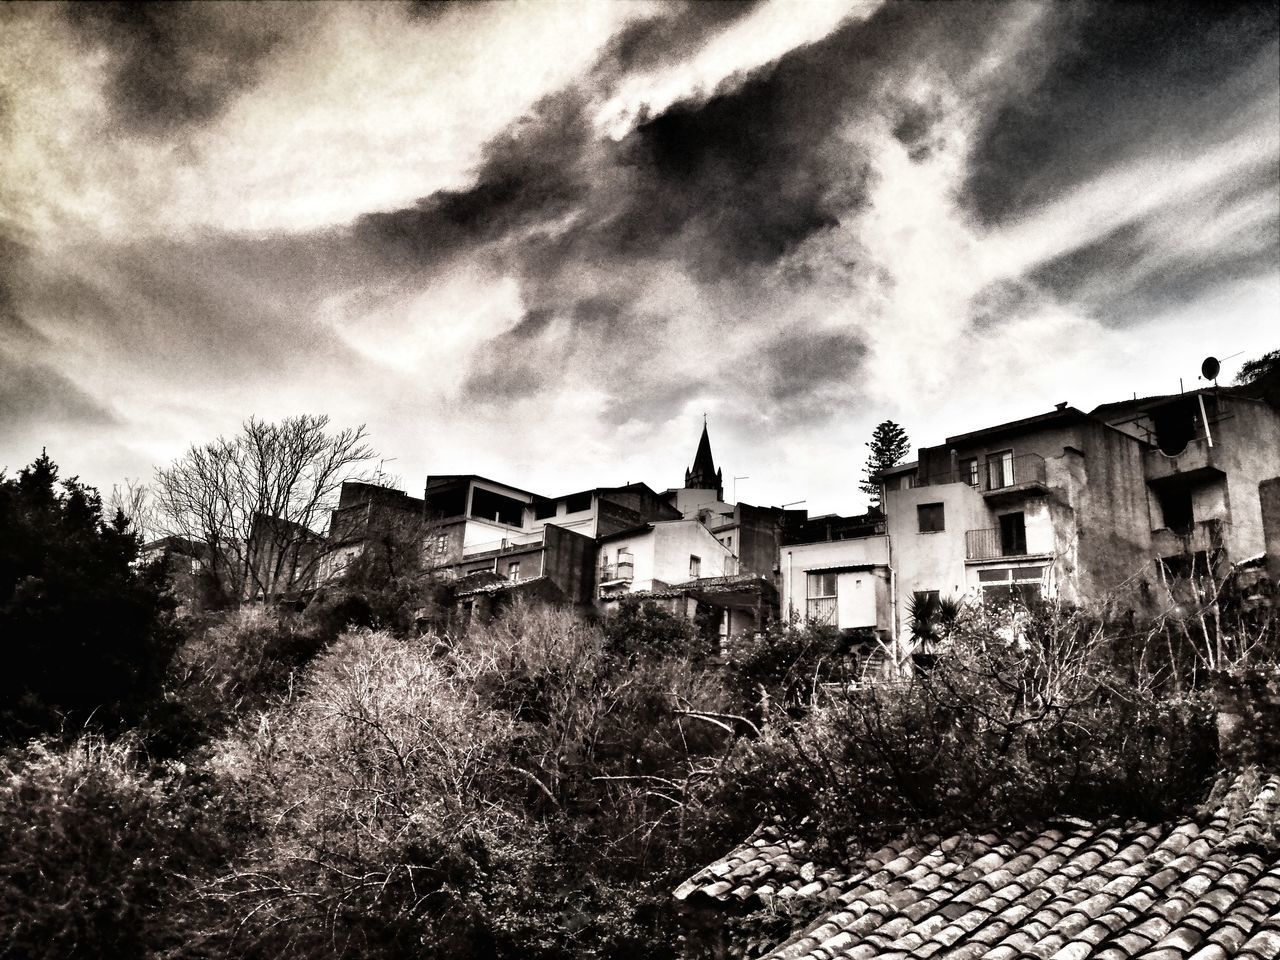 Sky Architecture Tree Outdoors No People Nature Clouds And Sky Panoramic Photography Cielo E Nuvole Tramonti_italiani Sicilytourism Sicily Landscape Alberi Landscape Natura Nature Lover Beauty In Nature Blackandwhite Photography